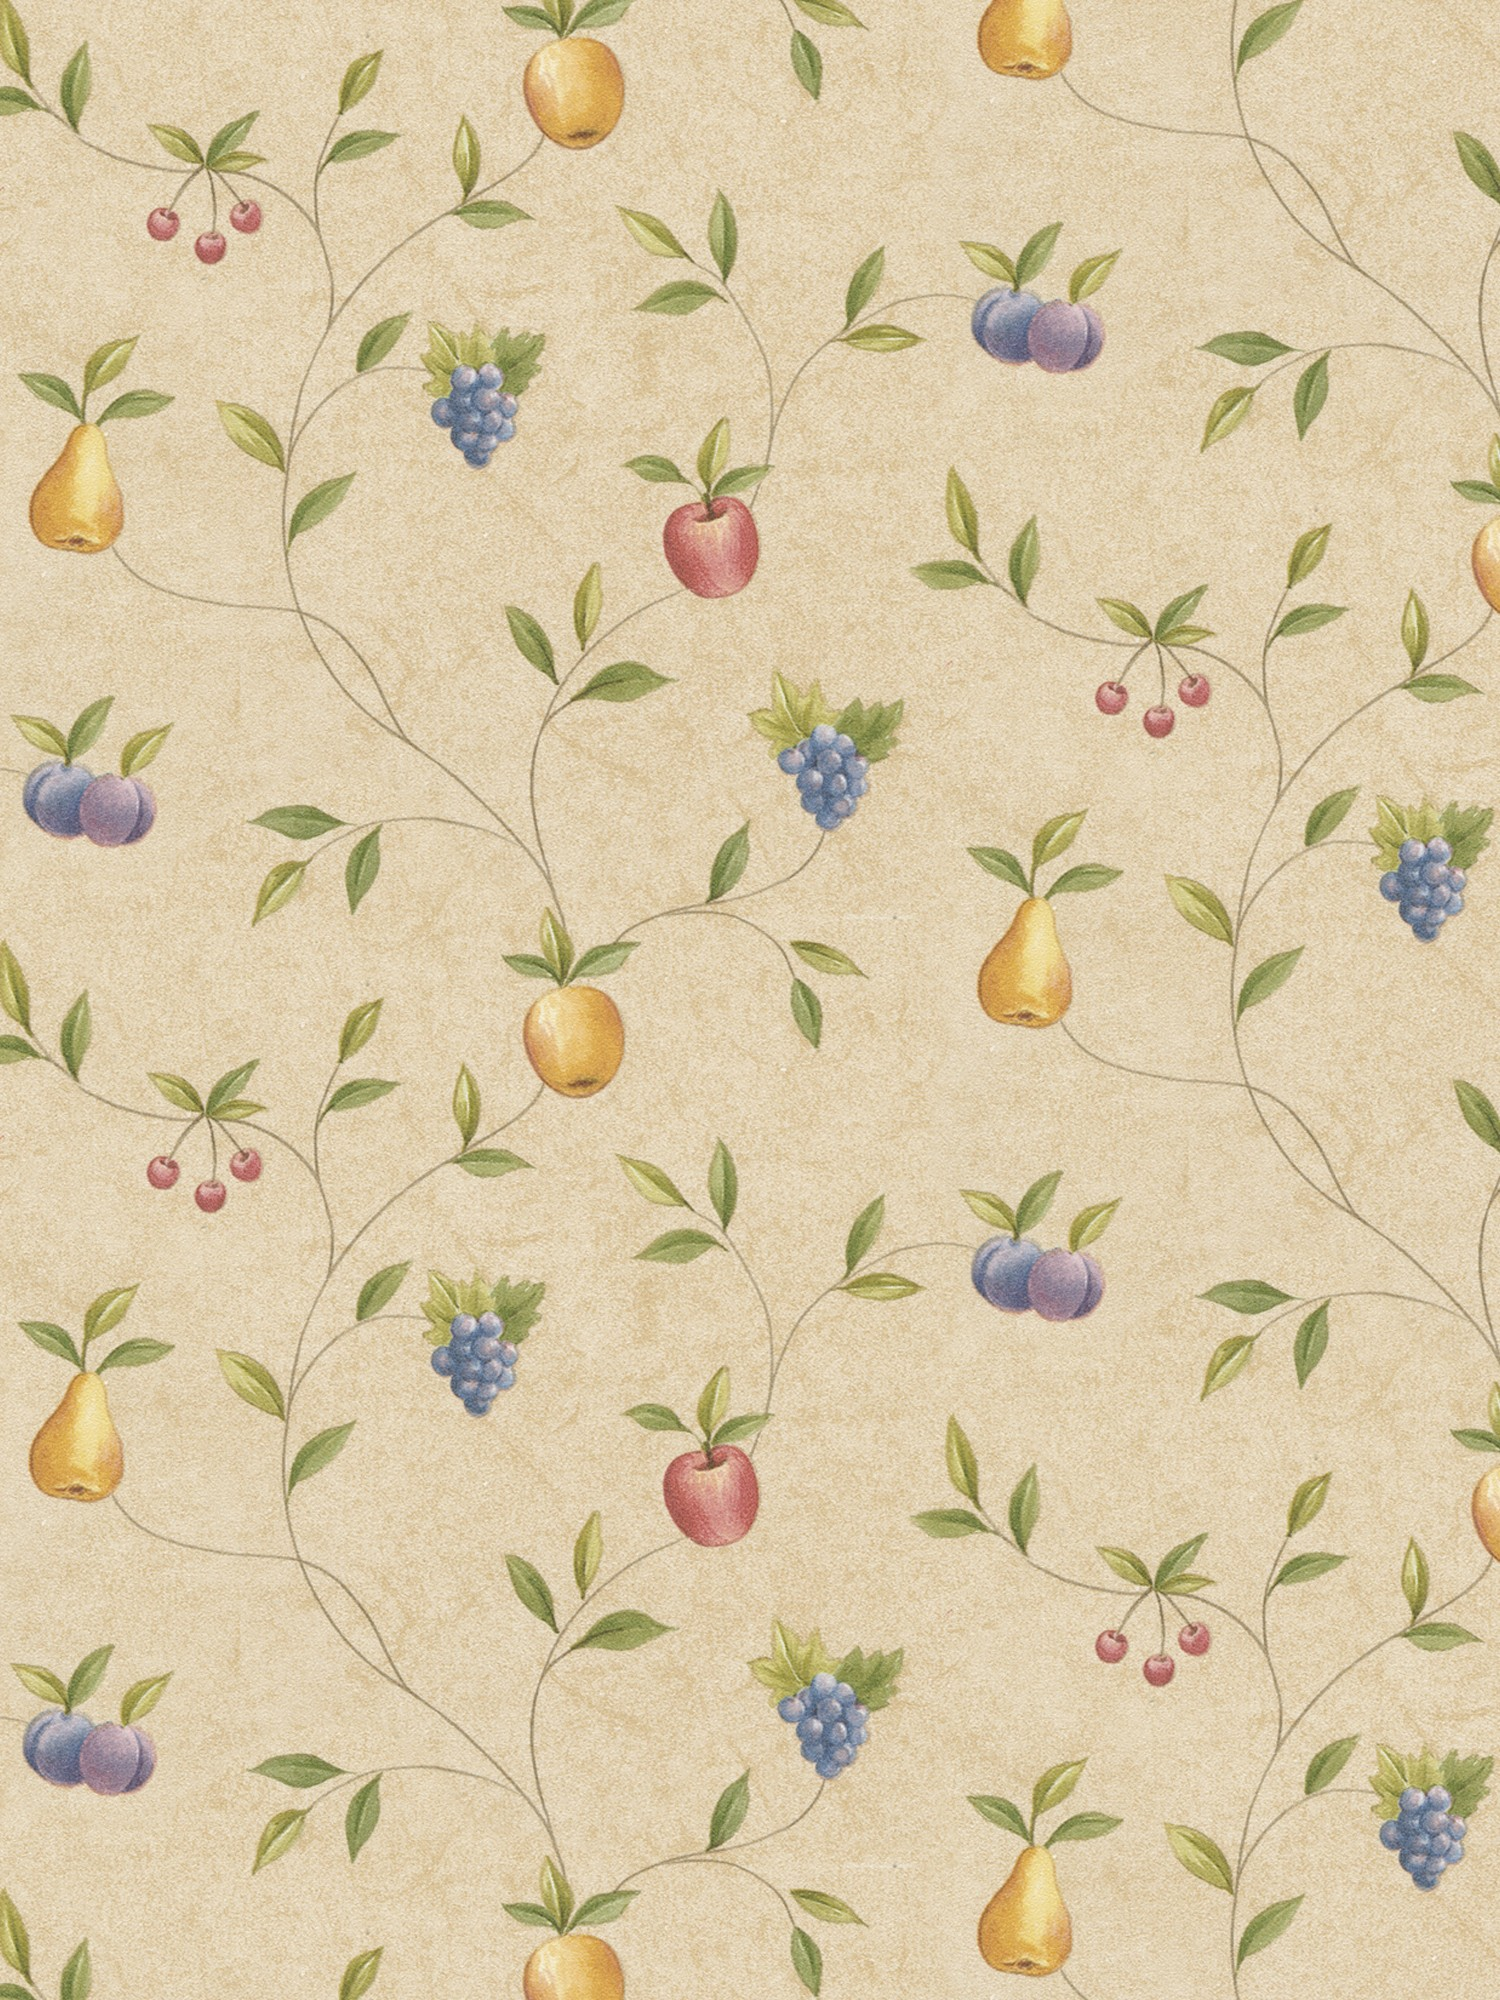 Fruity Wallpaper on an Old-Fashioned Kitchen photo - 2